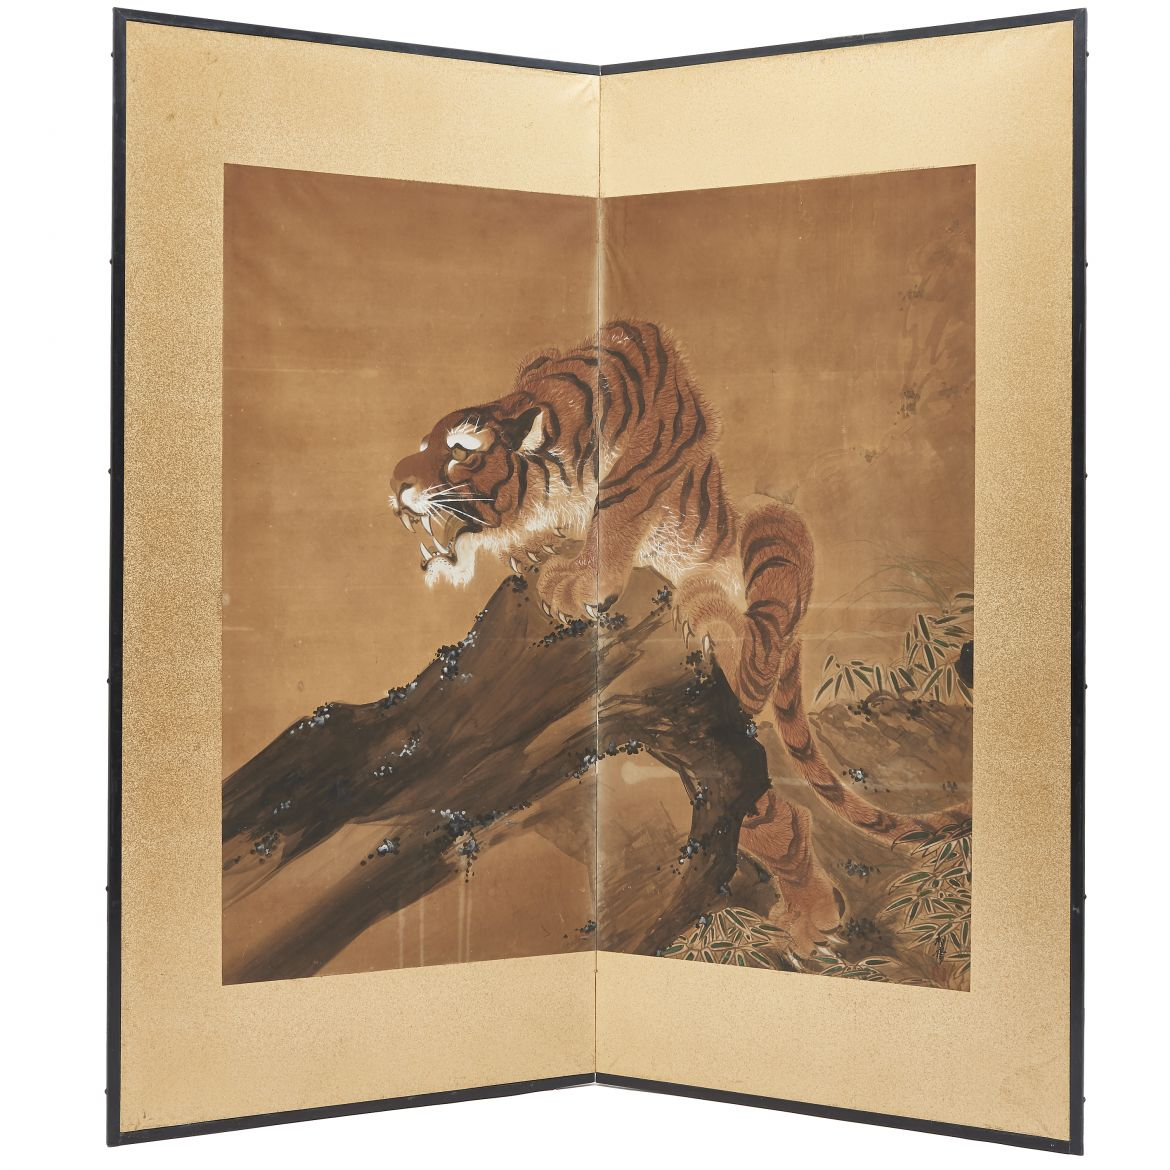 Japanese Paper screen Screen of Tiger